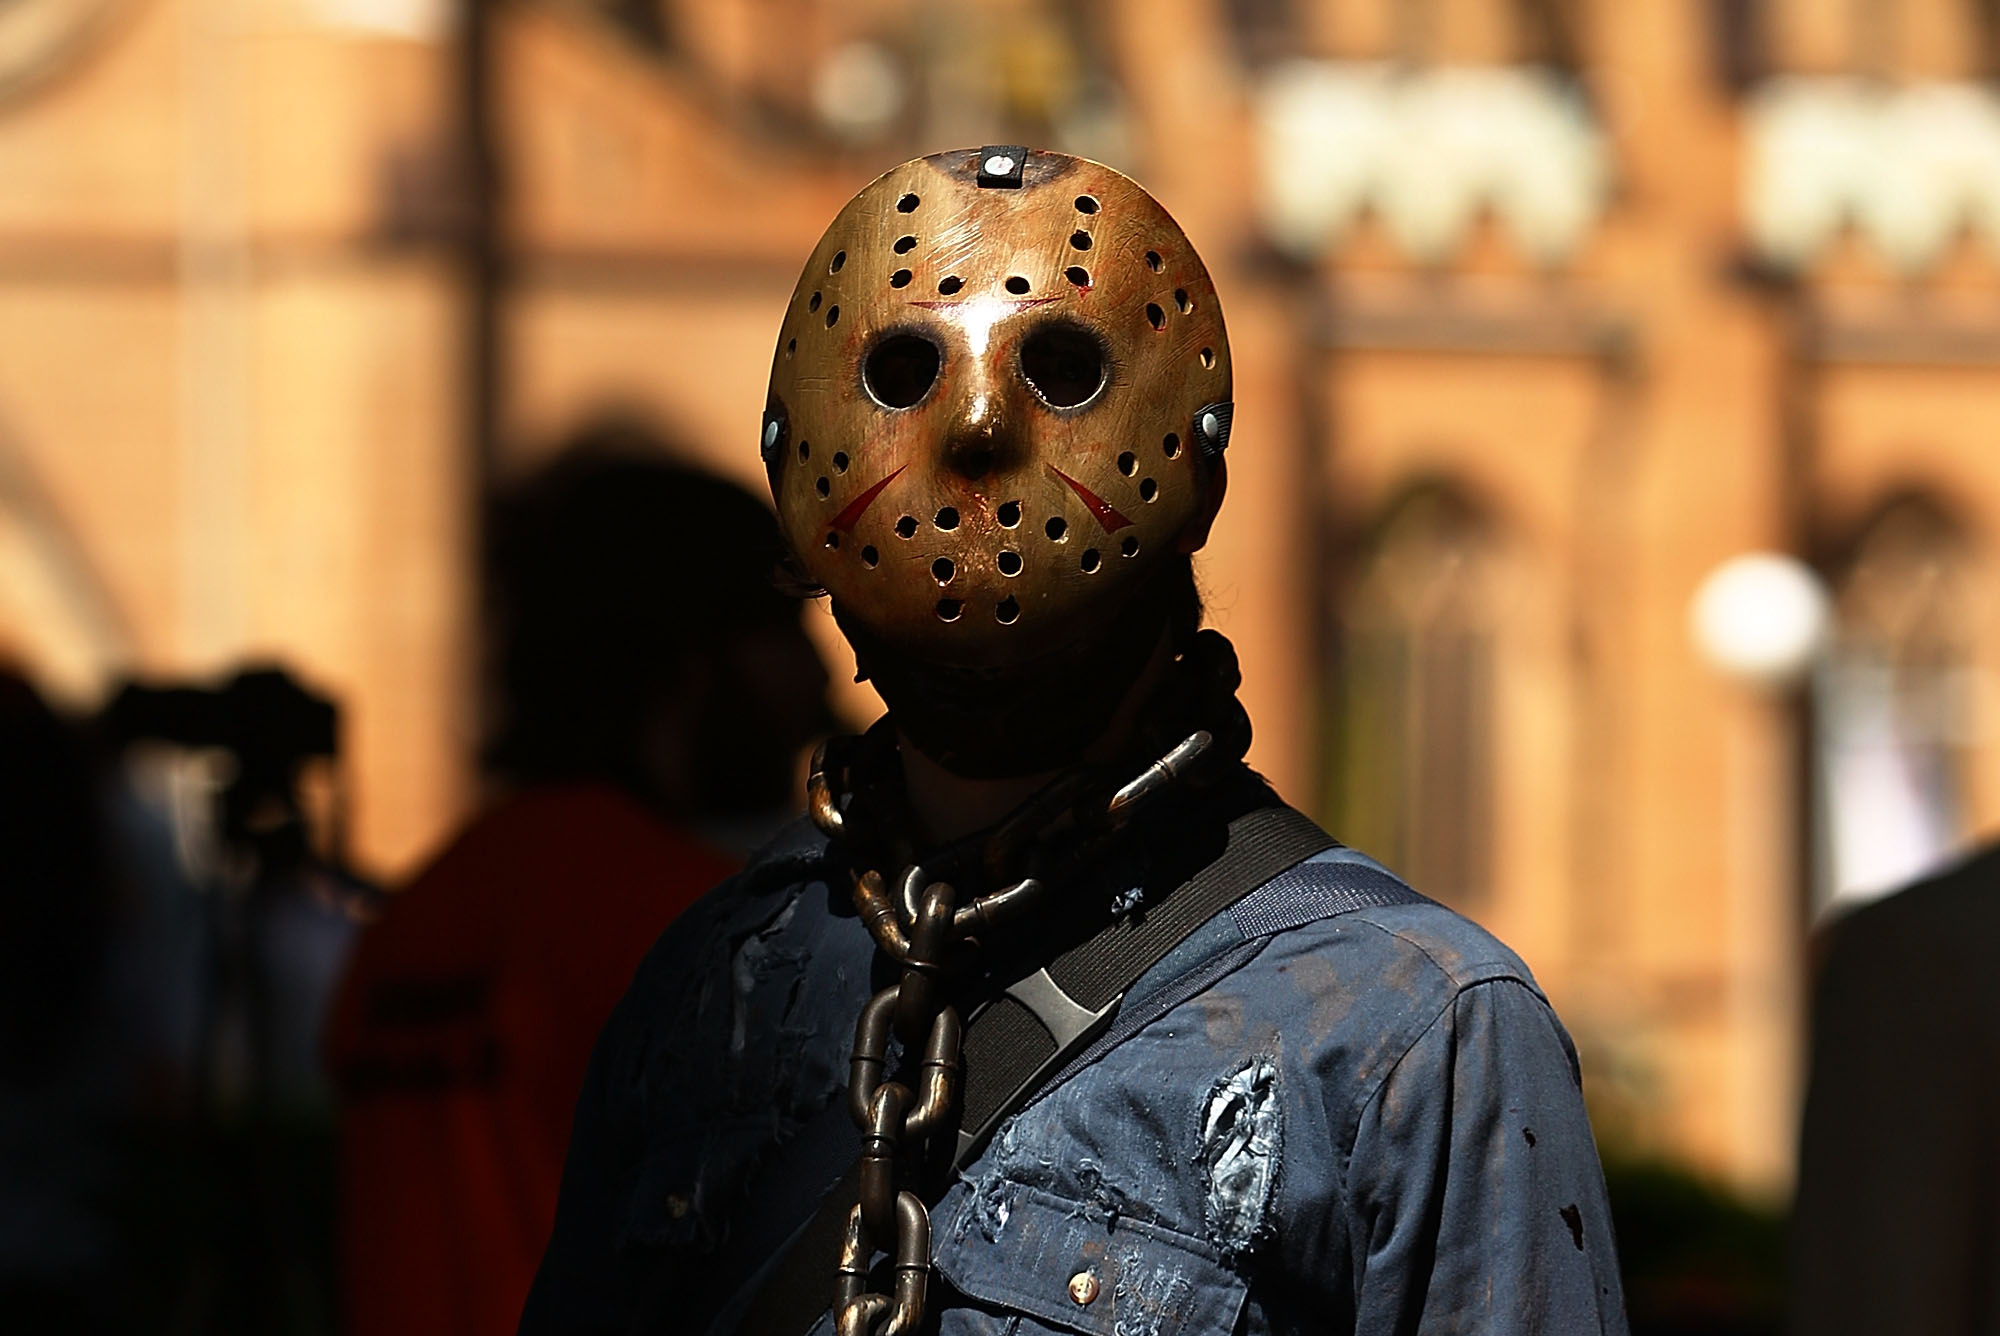 Friday The 13th: A History Of The 'Unlucky' Day